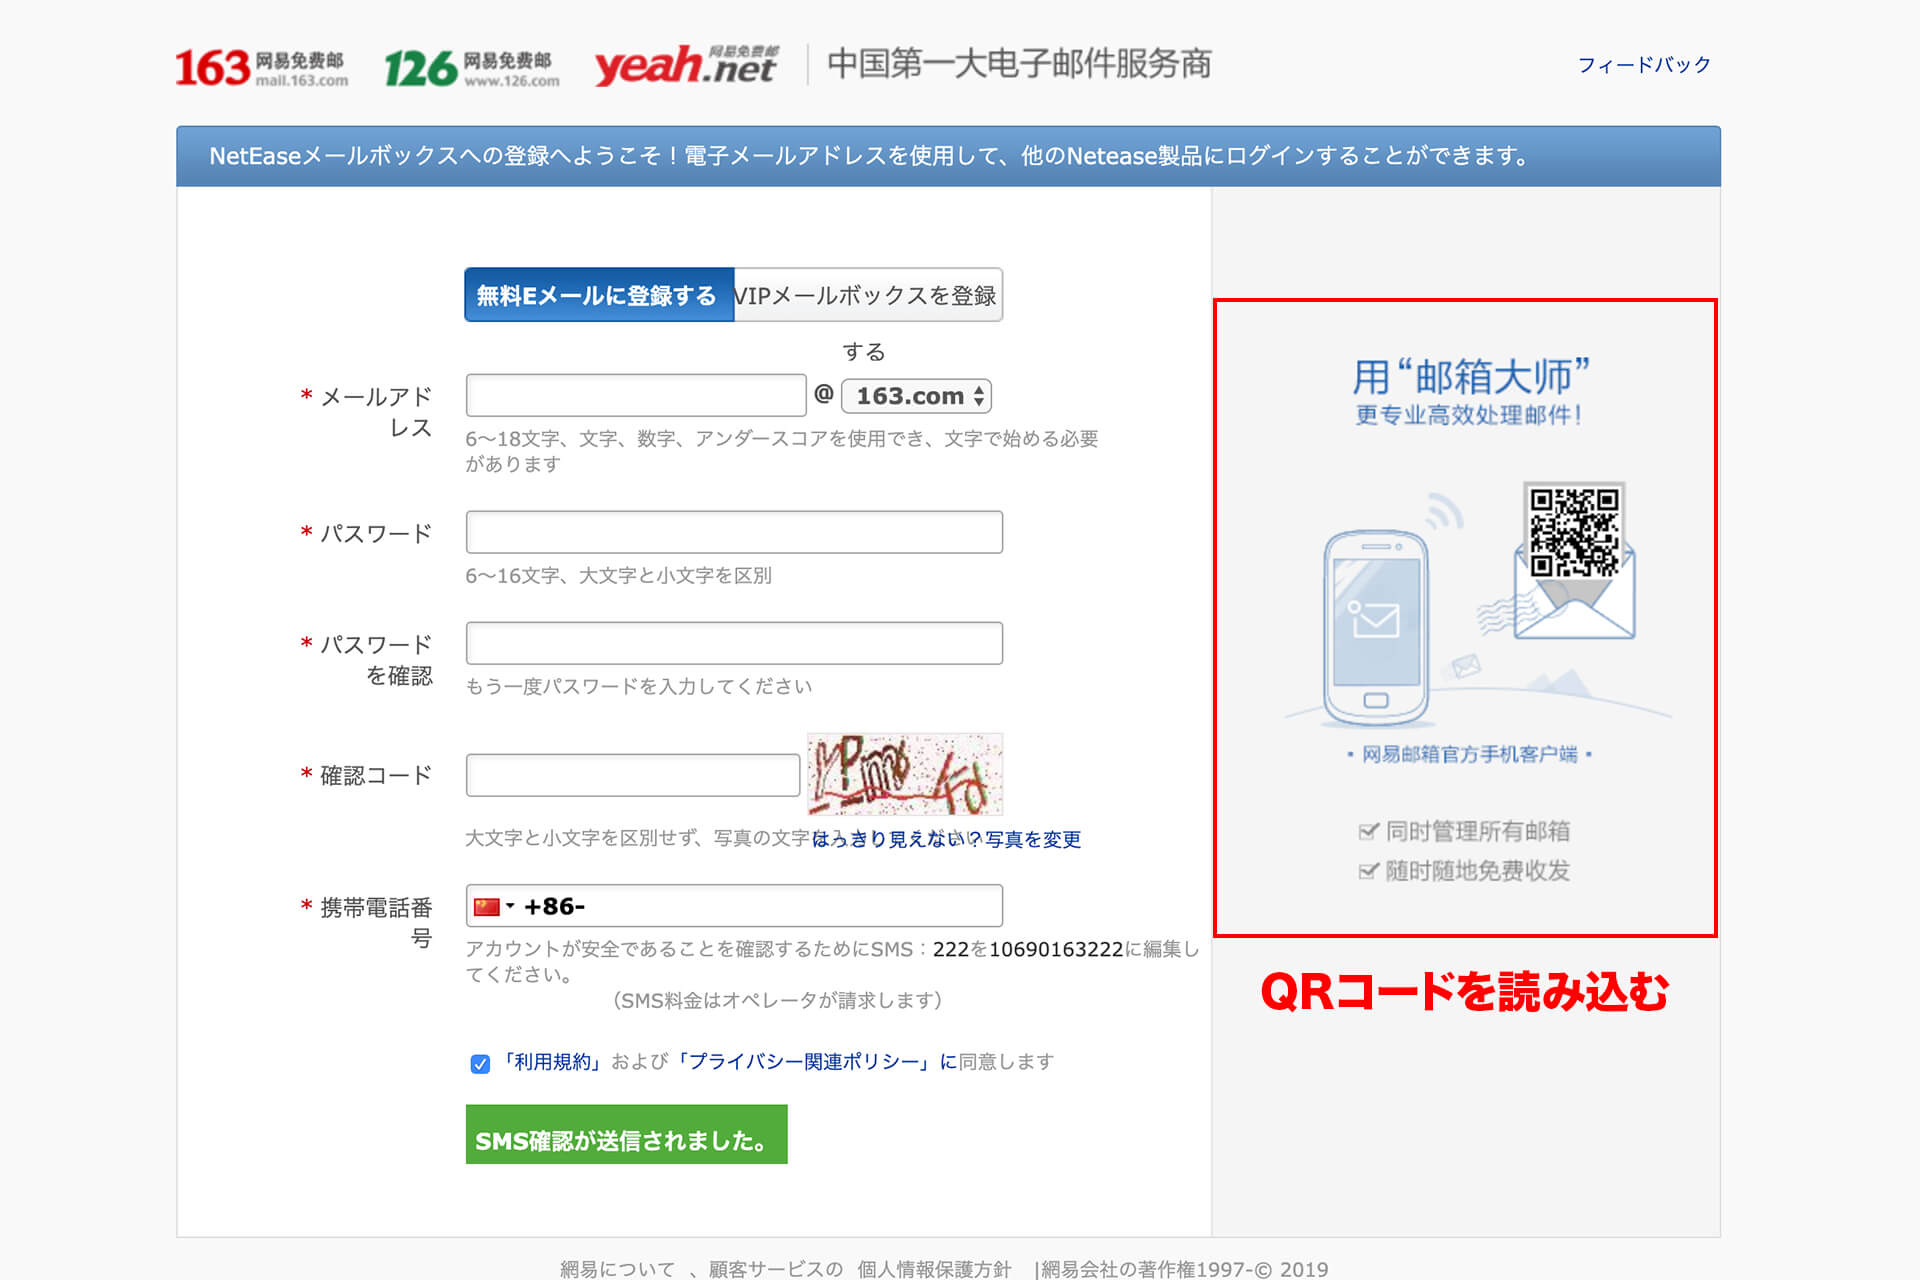 netease-mail-page2